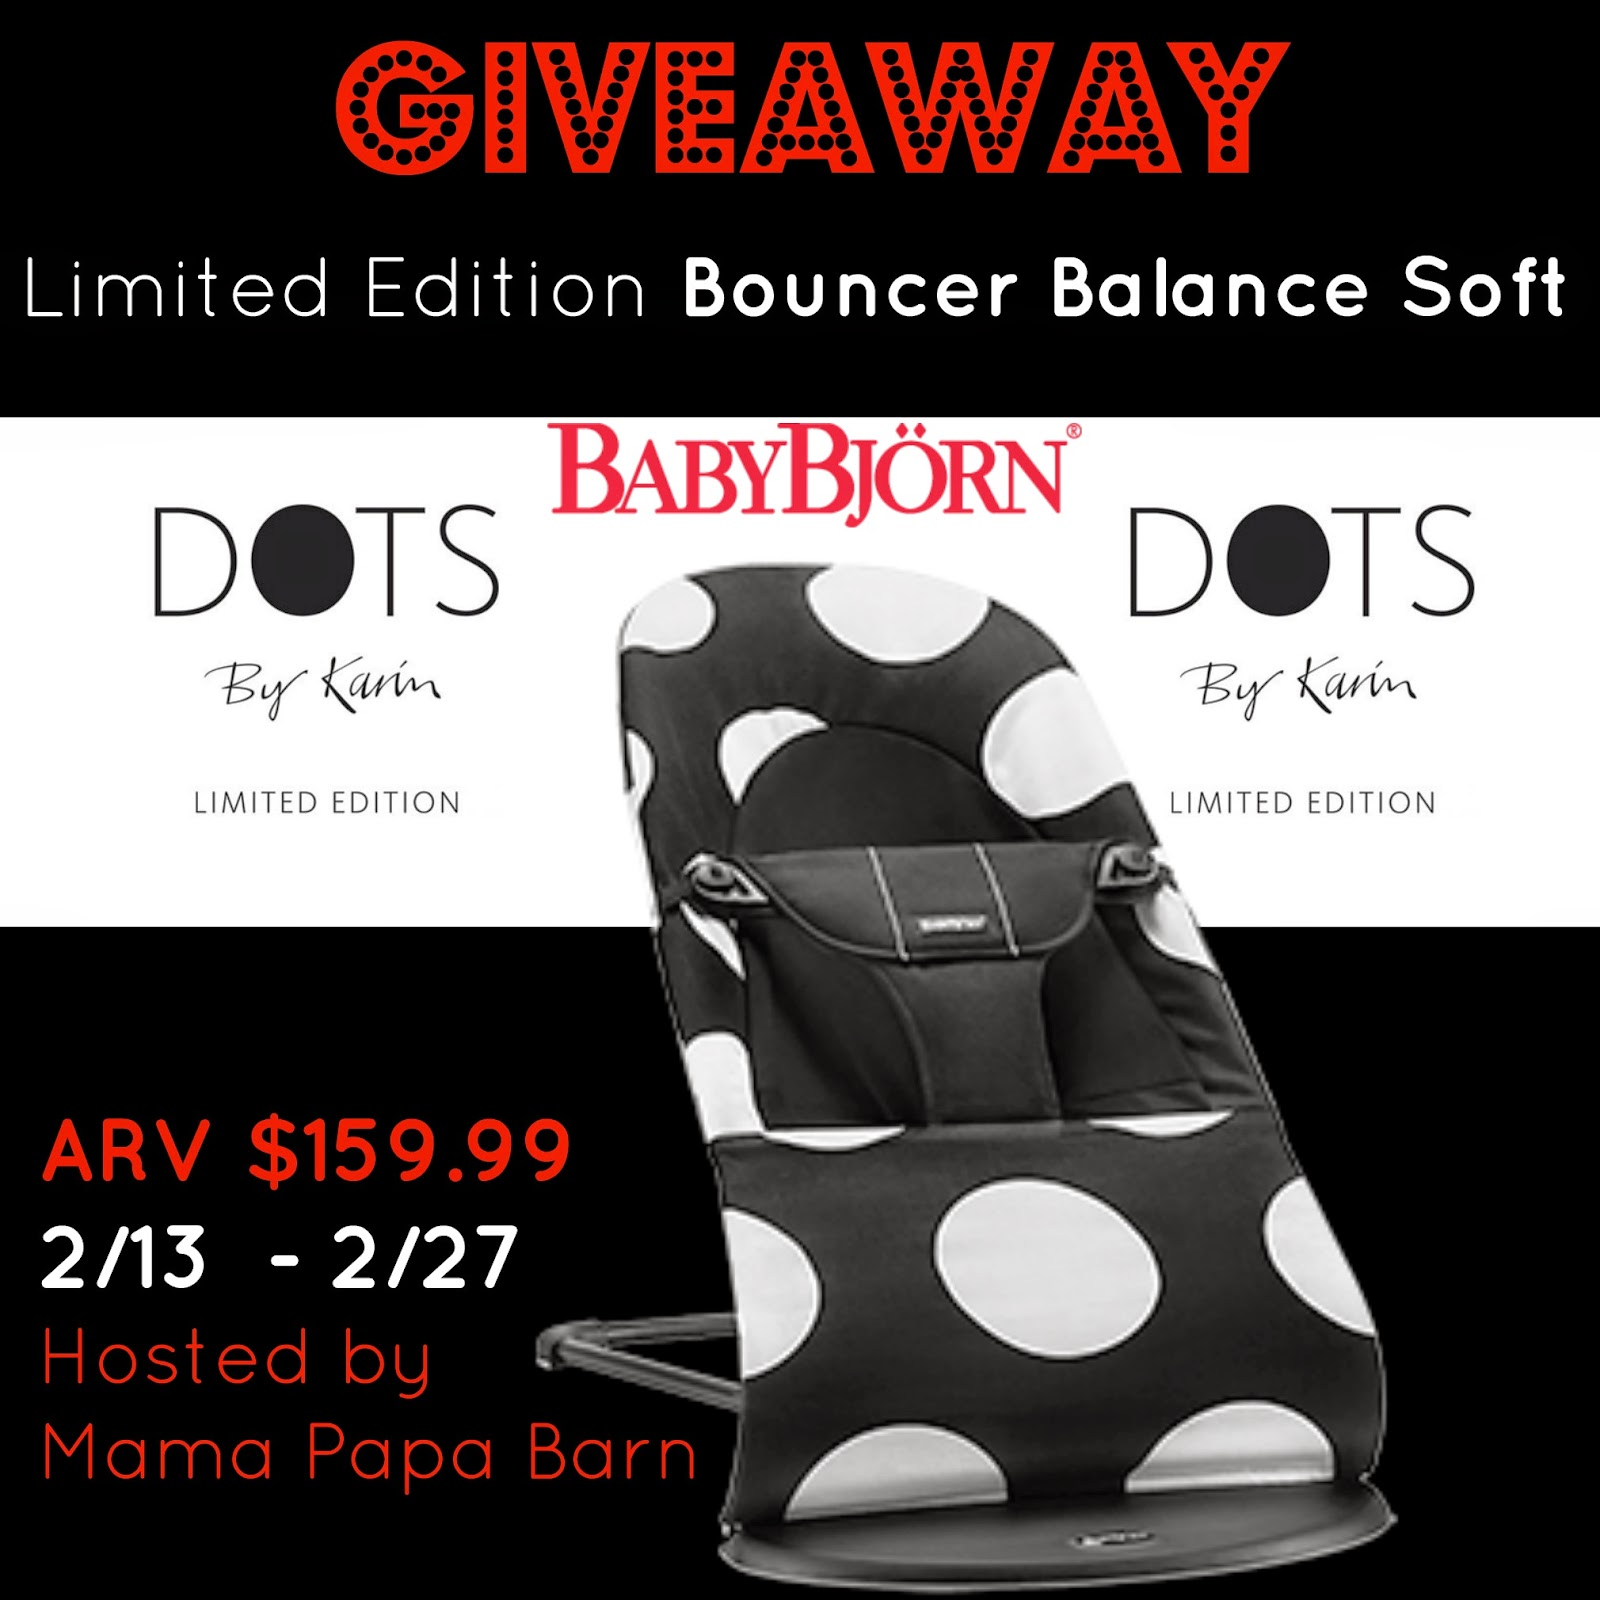 Giveaway: BabyBjorn Limited Edition Bouncer Balance Soft